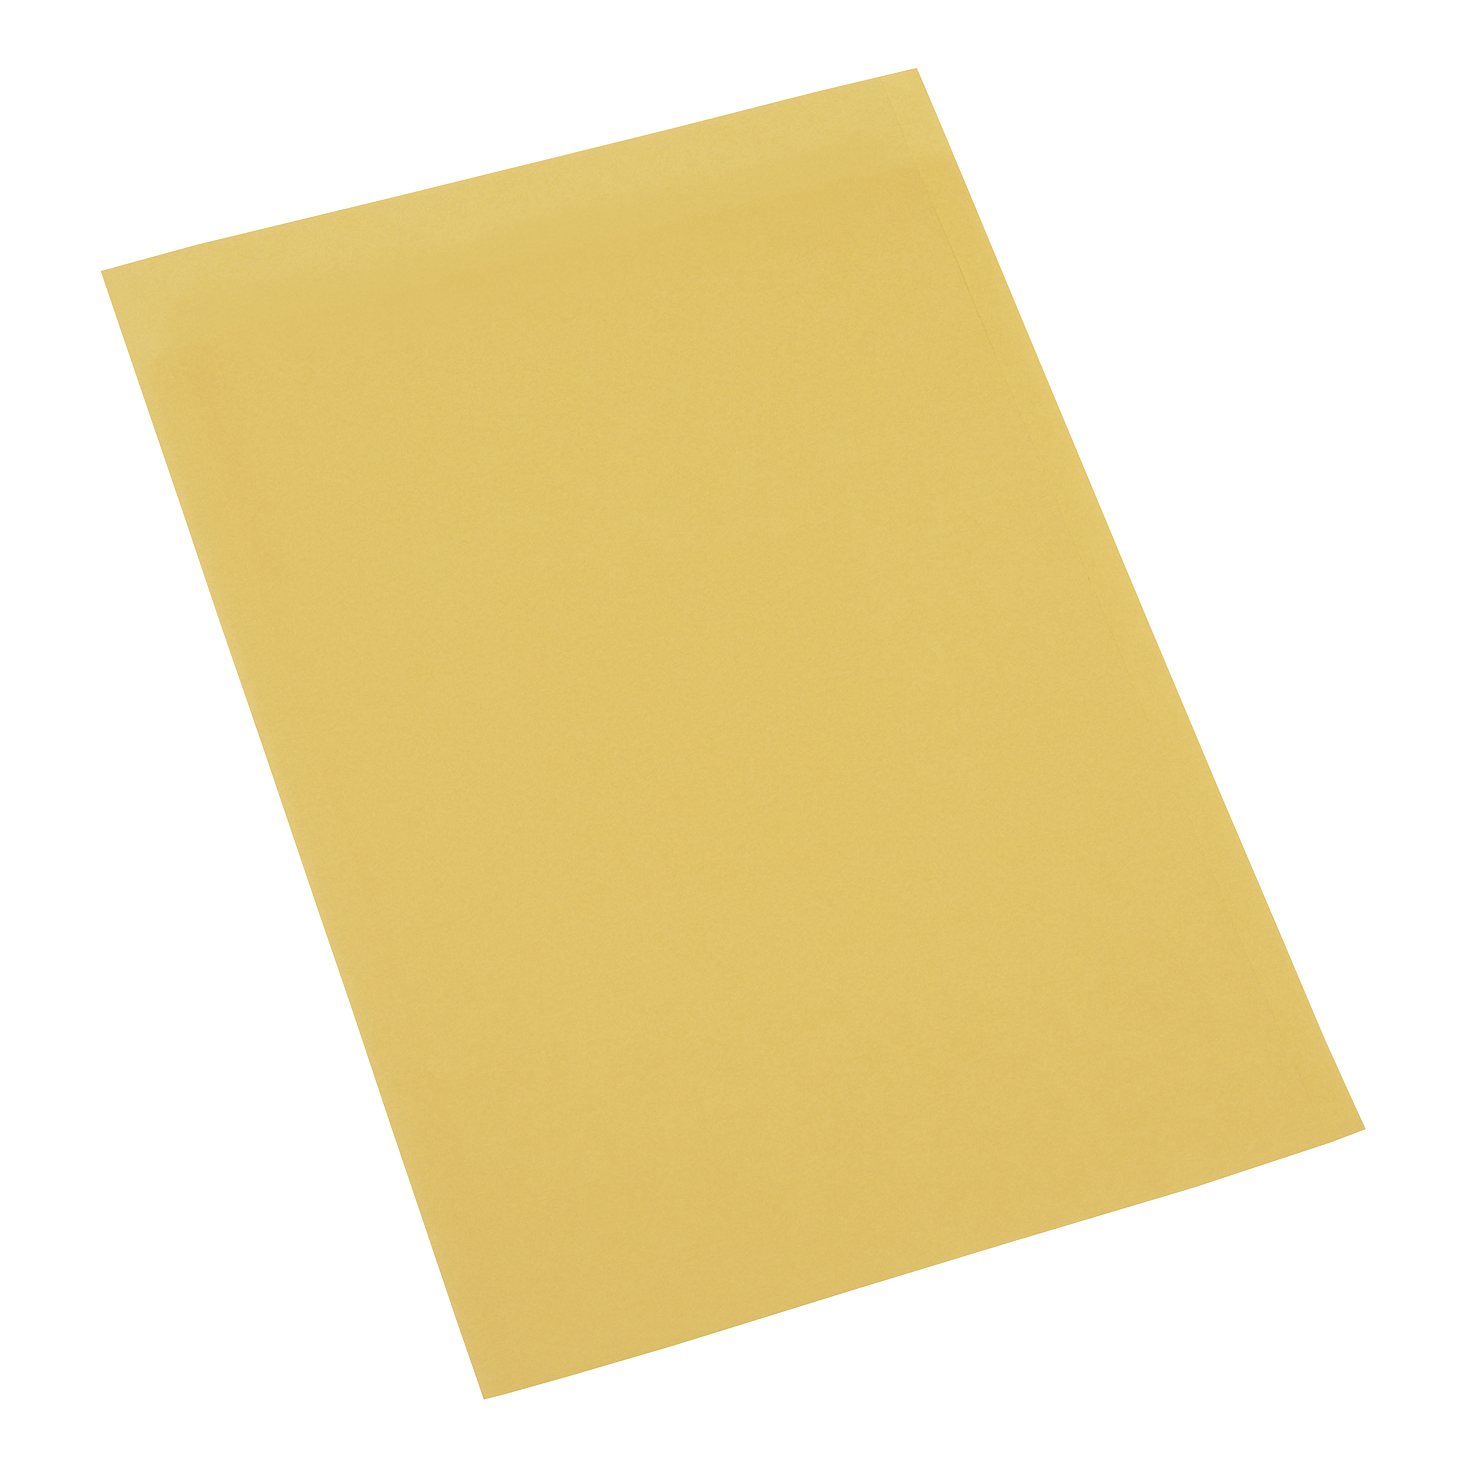 Square Cut Folders 5 Star Office Square Cut Folder Recycled 180gsm Foolscap Yellow Pack 100